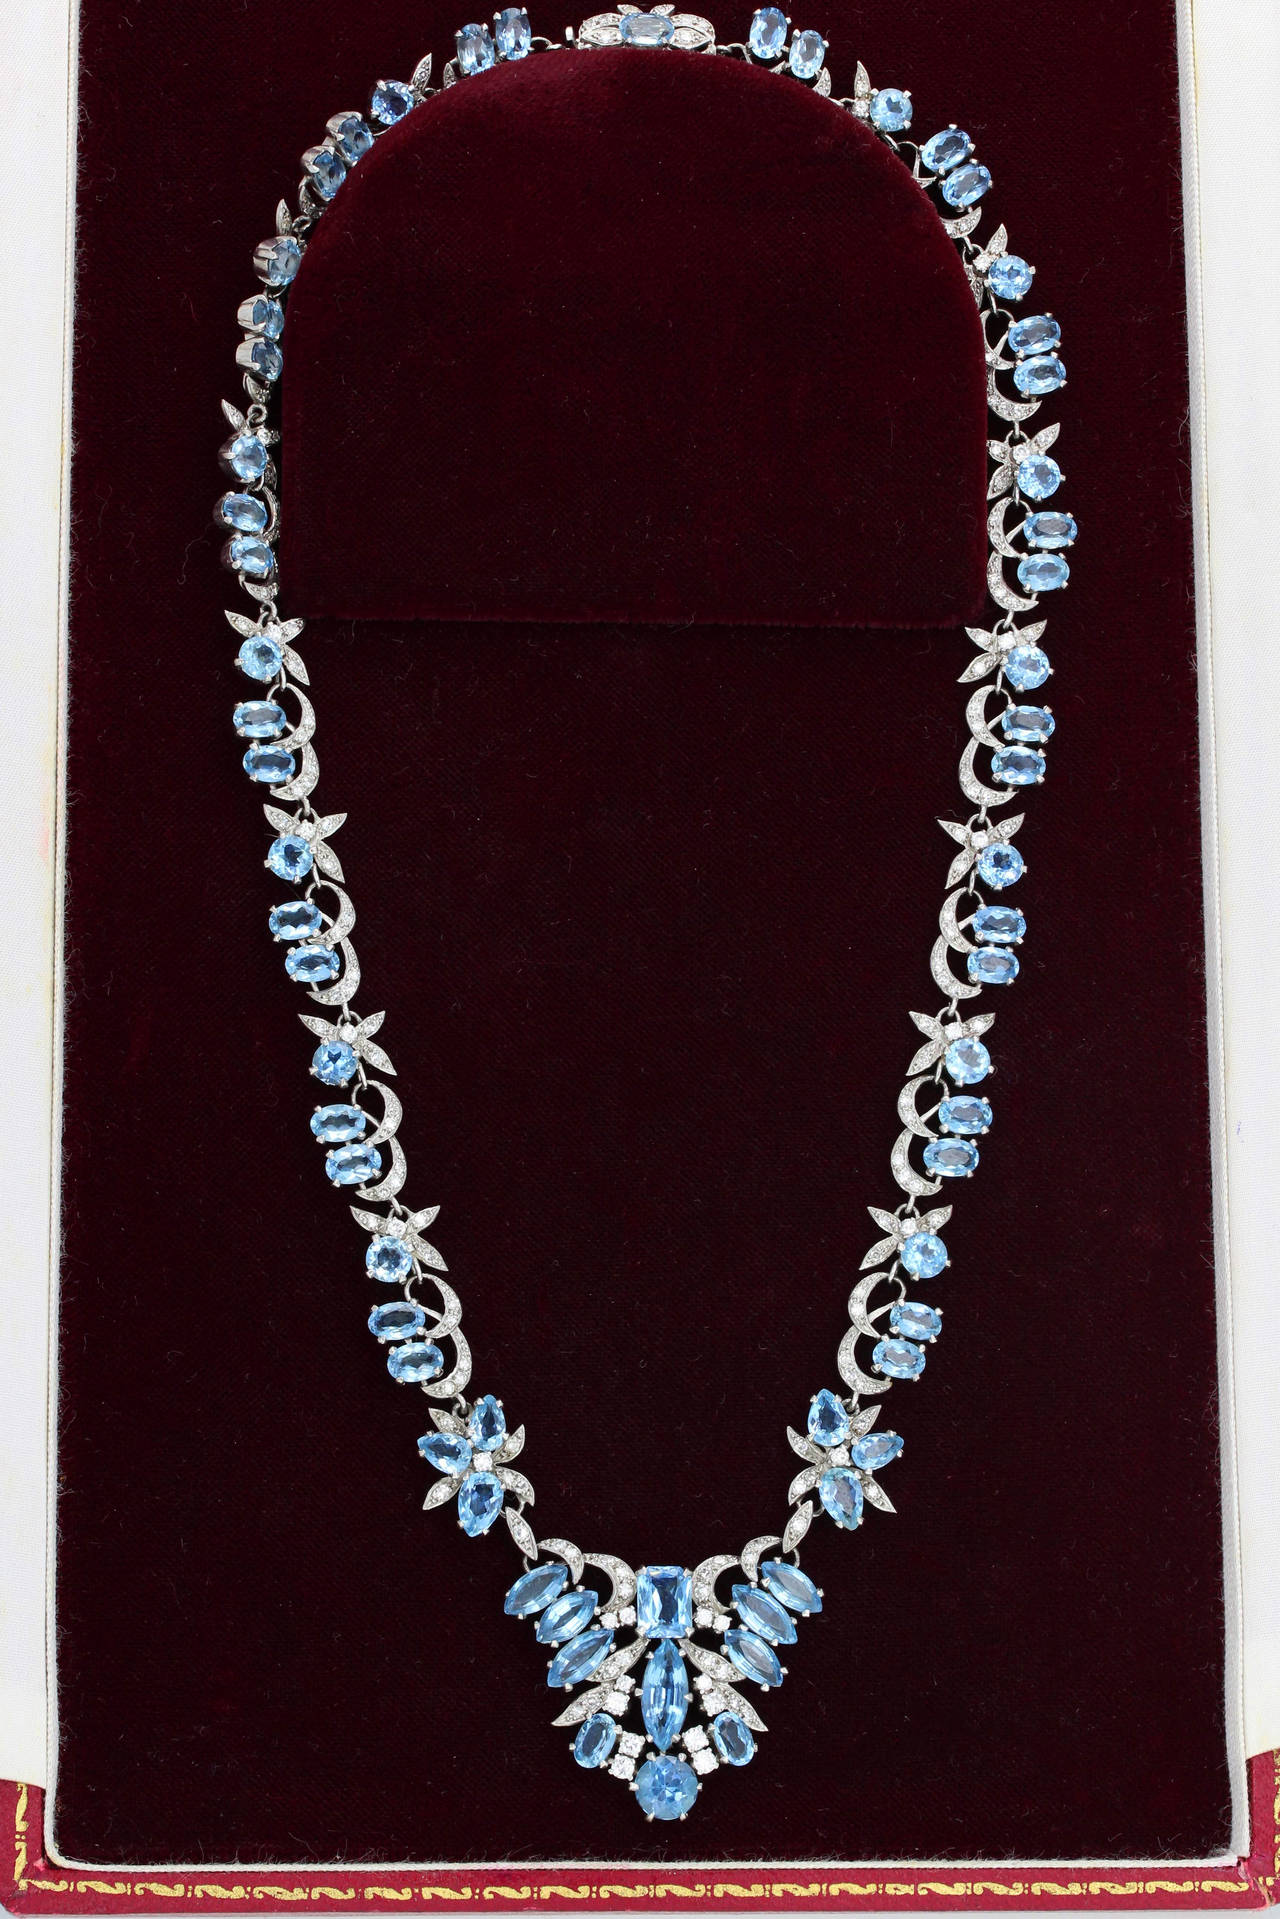 Post-War 1950s Harrods London Aquamarine Diamond Gold Necklace For Sale